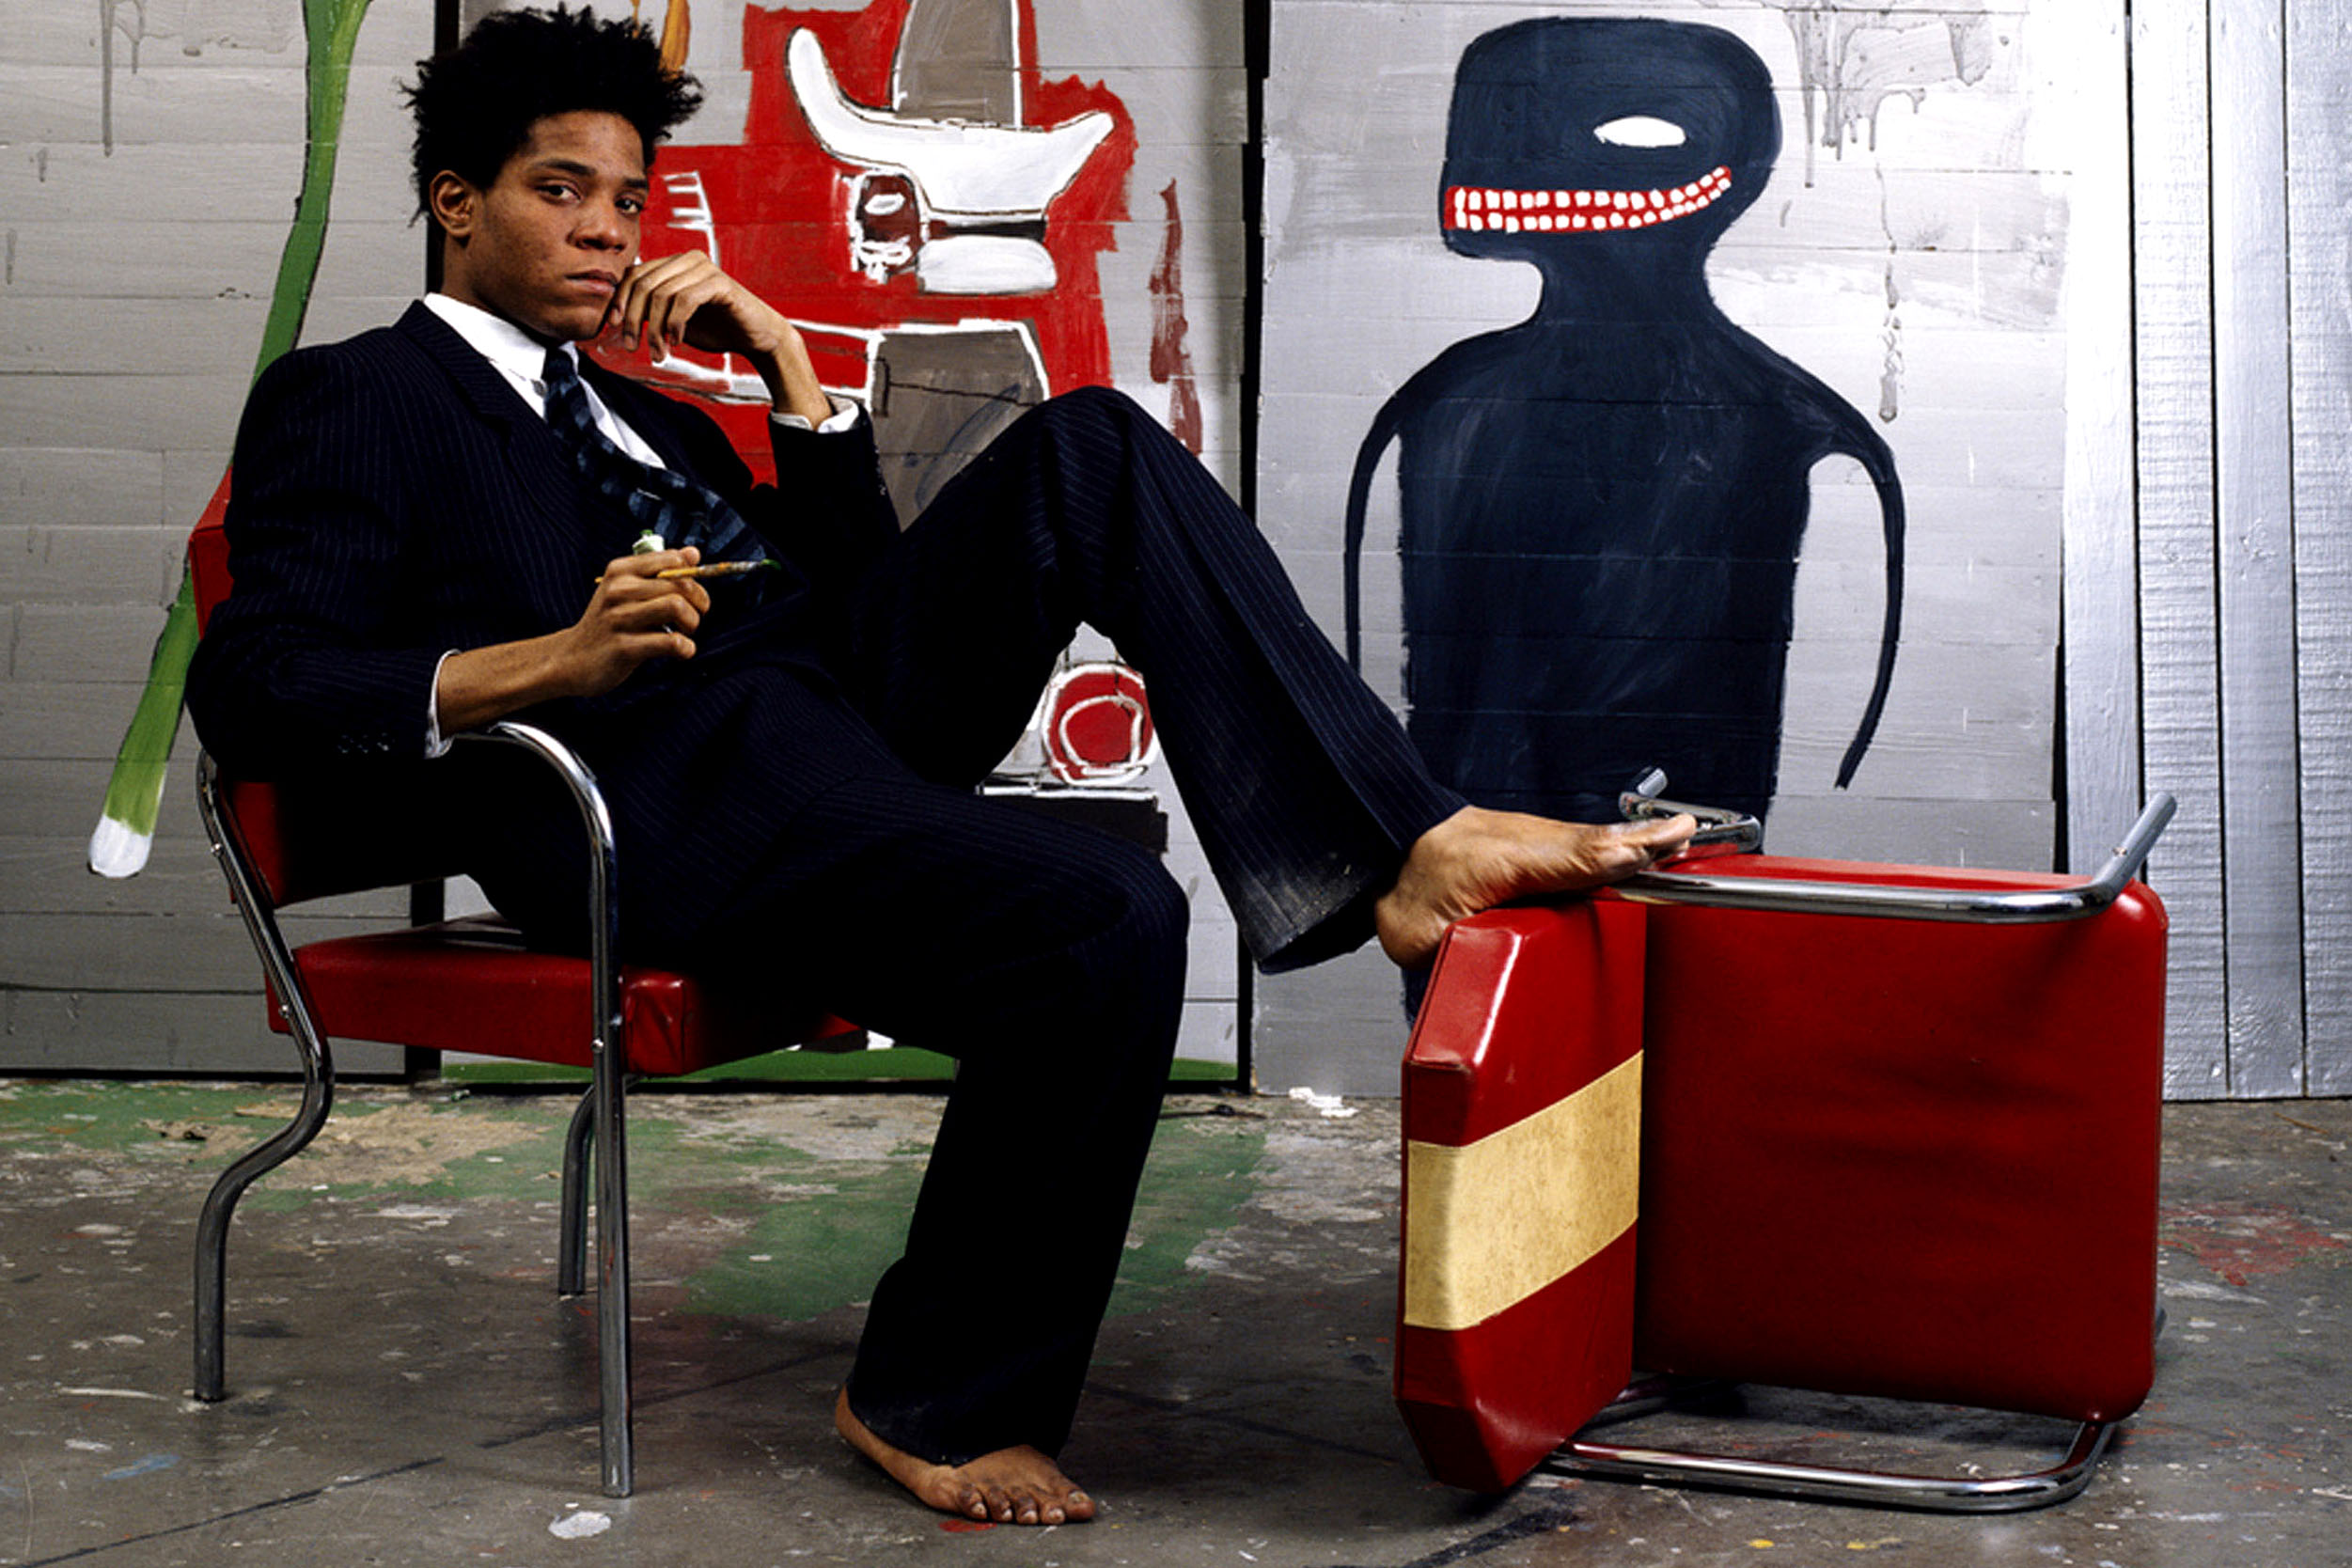 BASQUIAT EXHIBIT